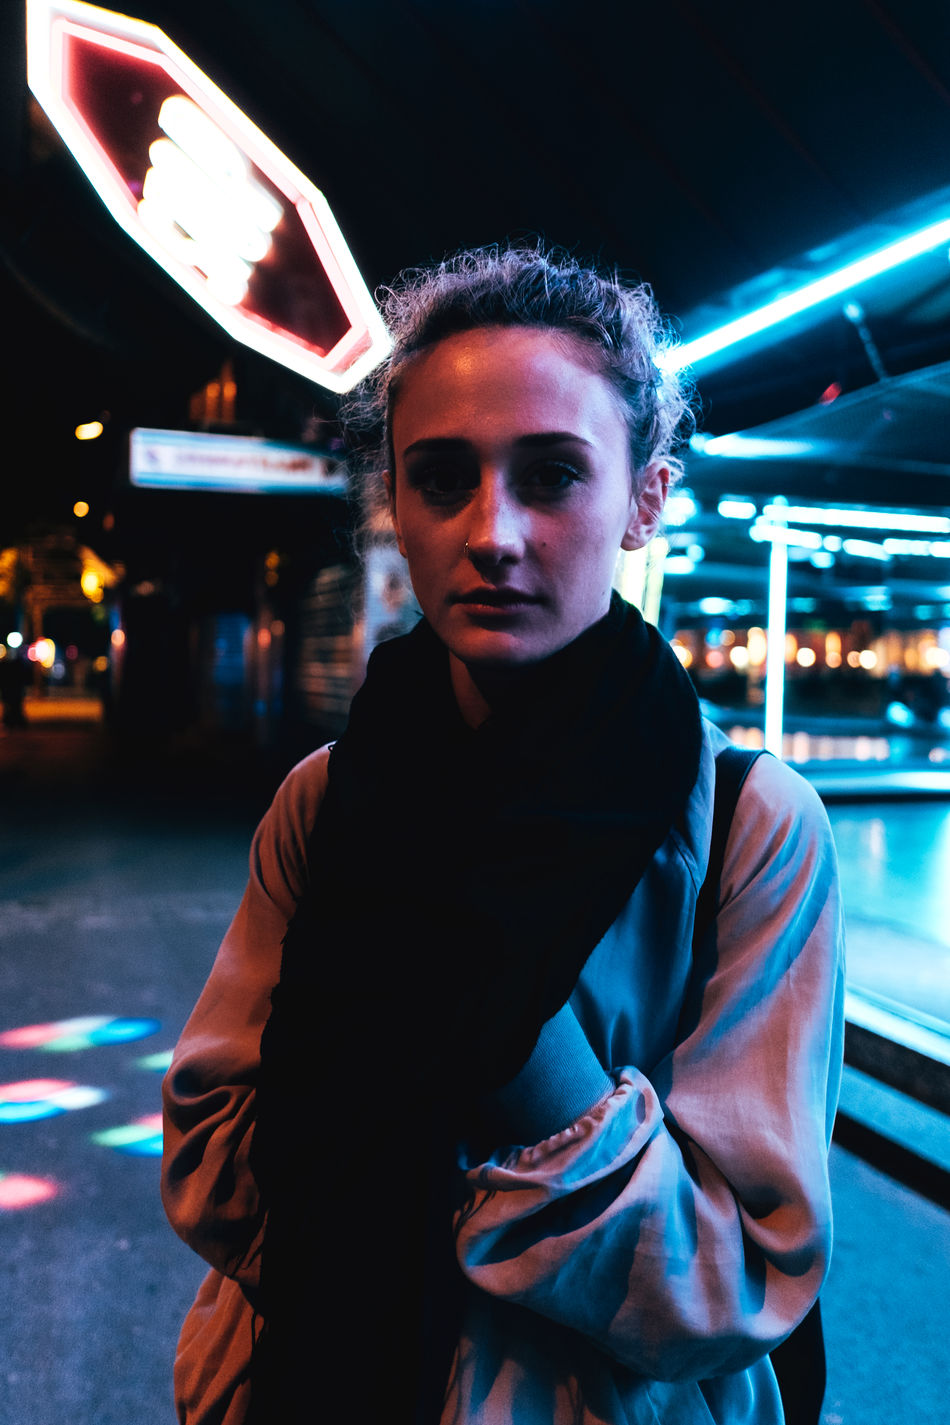 Wiener Prater Cities At Night Vienna EyeEm Best Shots Lowlightleague Shootermag Notes From The Underground Lowlightphotography Light And Shadow Portrait Urban Mood EyeEm Gallery The Portraitist - 2016 EyeEm Awards Lowlight Austria Night Photography Streets Of Vienna Neon Lights EyeEm X Huawei - Cities At Night